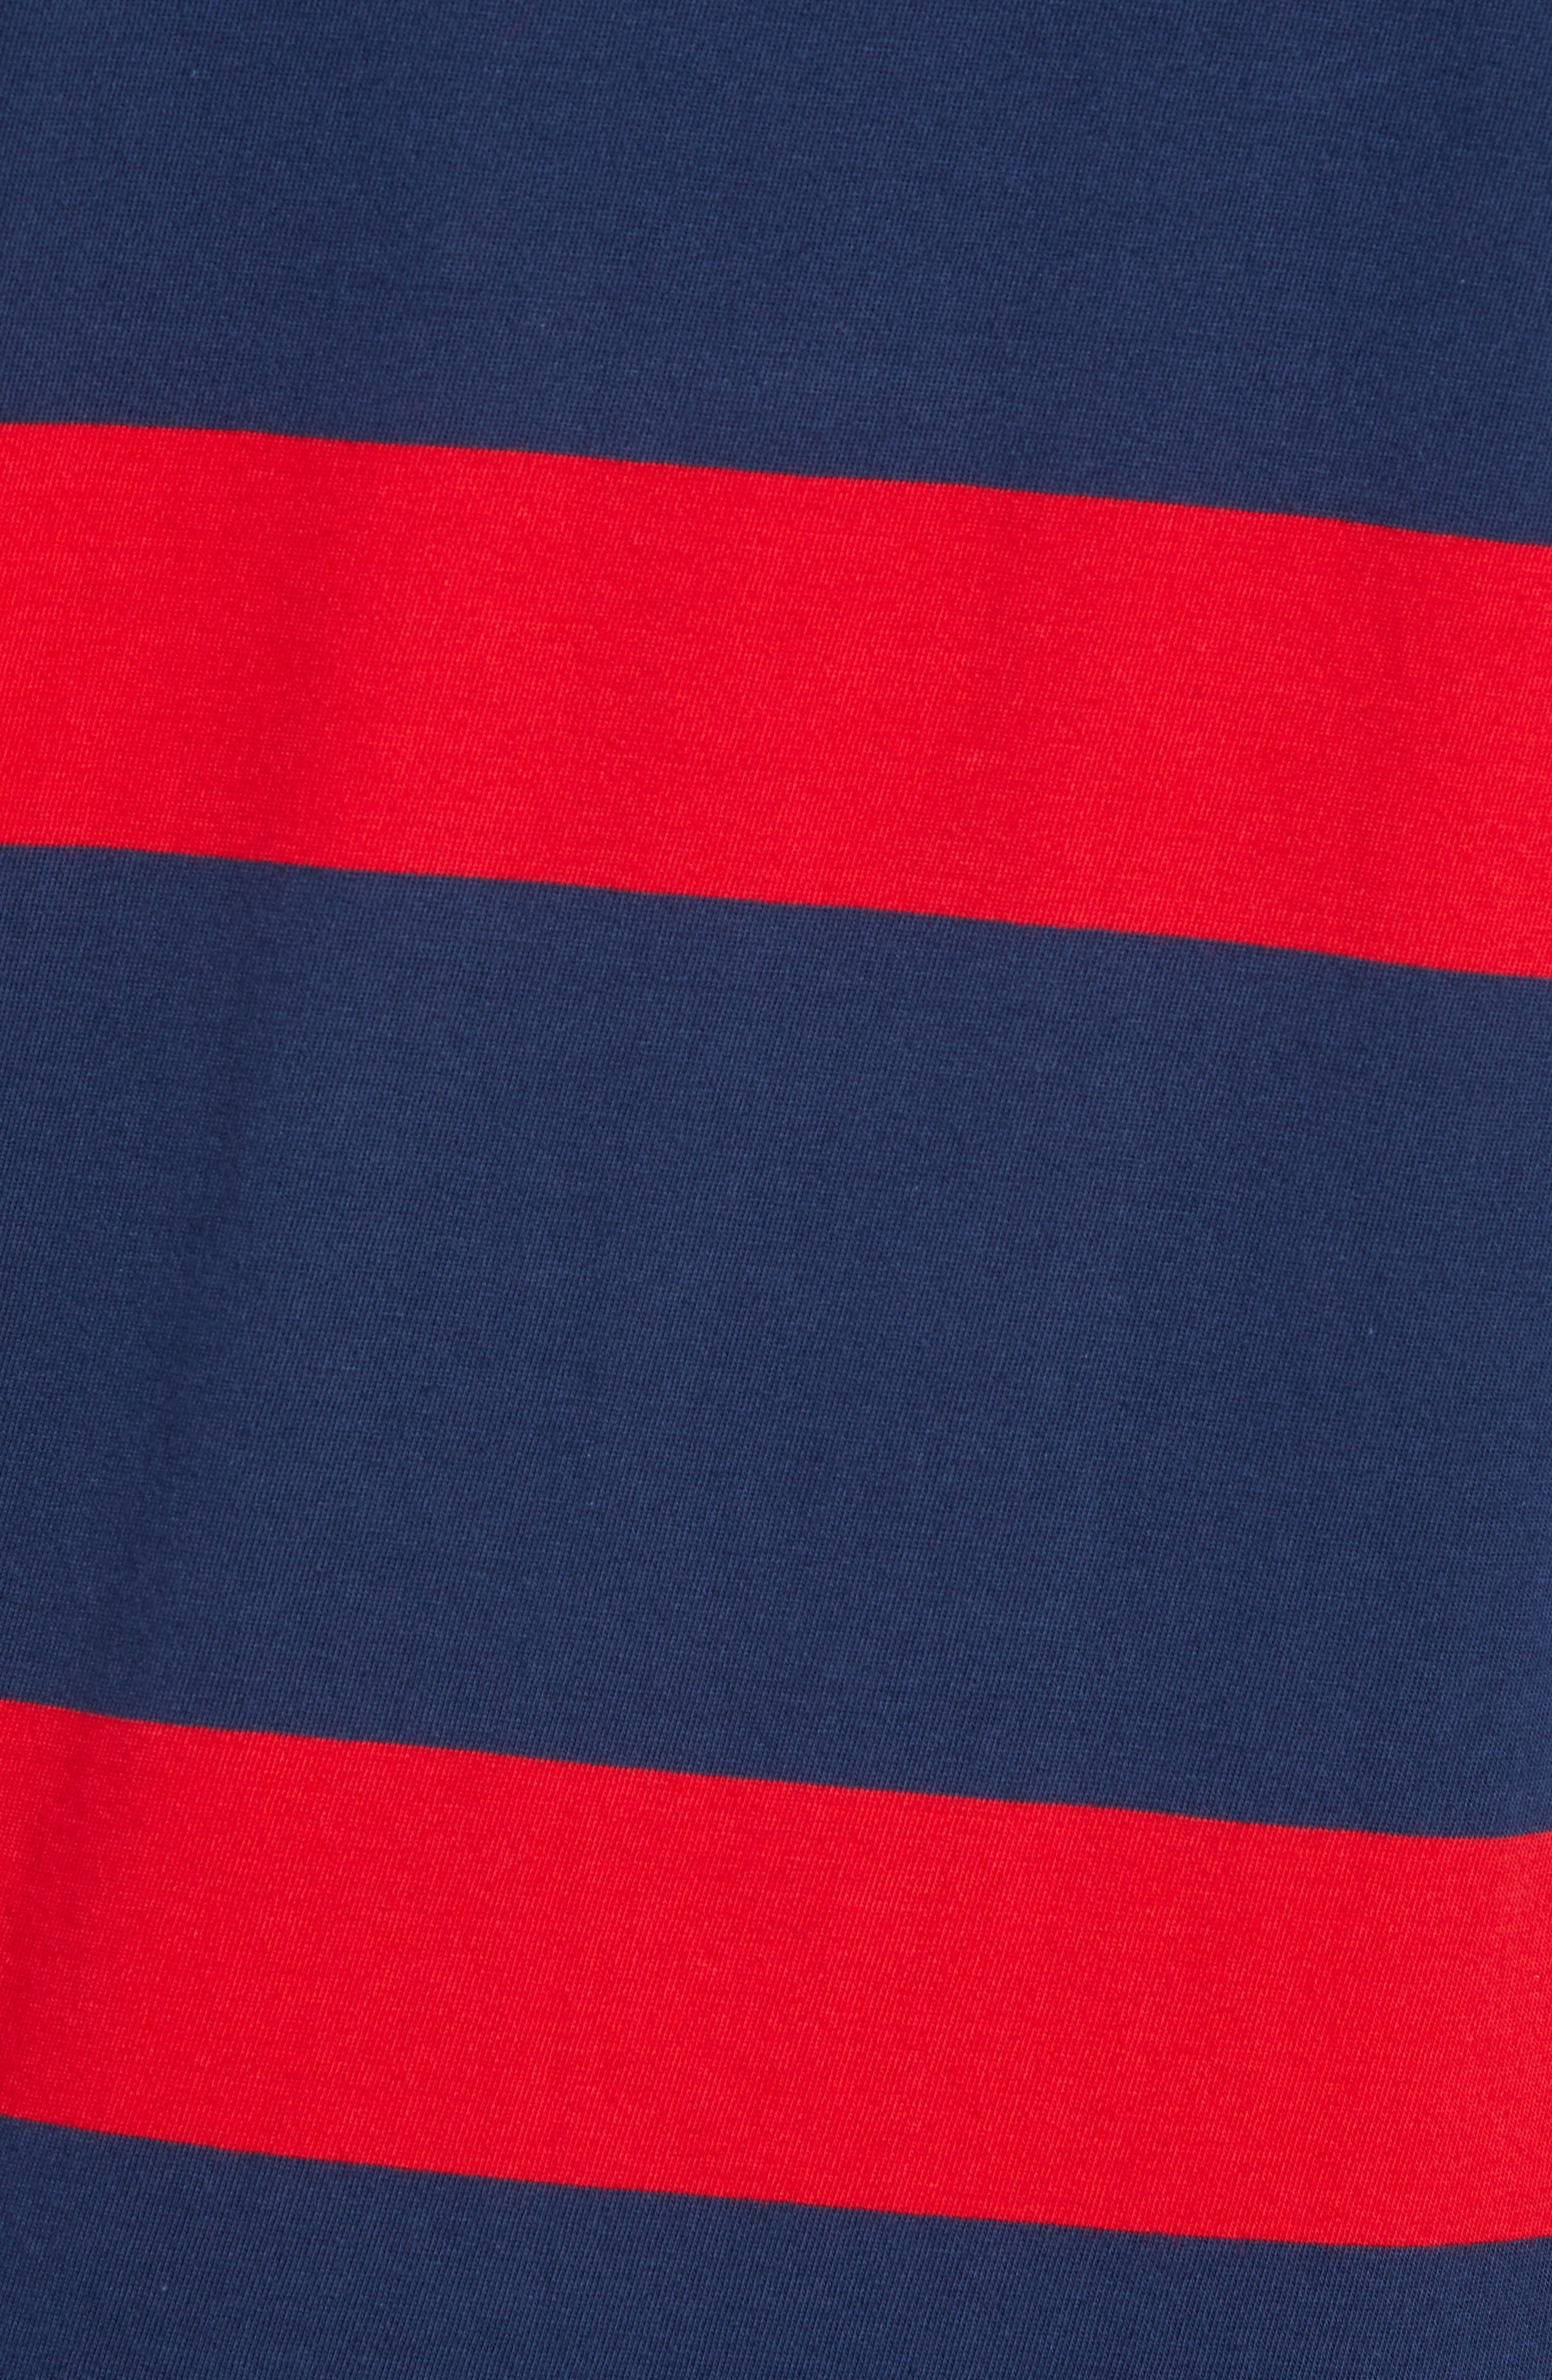 Stripe Pocket T-Shirt,                             Alternate thumbnail 5, color,                             DRESS BLUES/ CRIMSON STRIPES